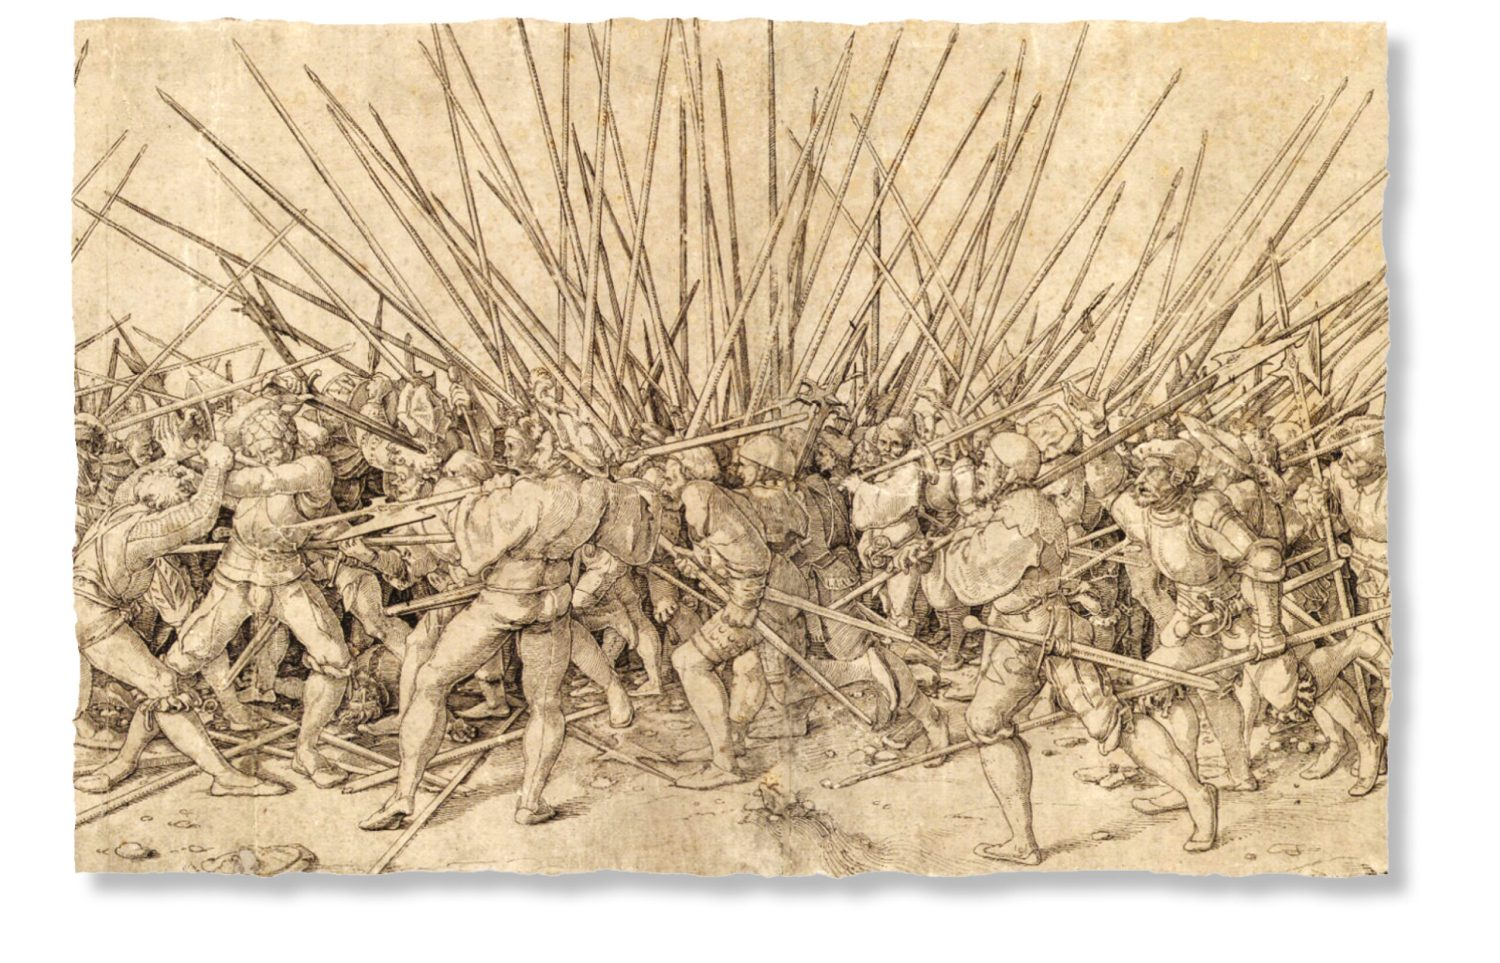 below Hans Holbein the Younger's depiction of Swiss pikemen fighting German landsknechts in the early 16th century.